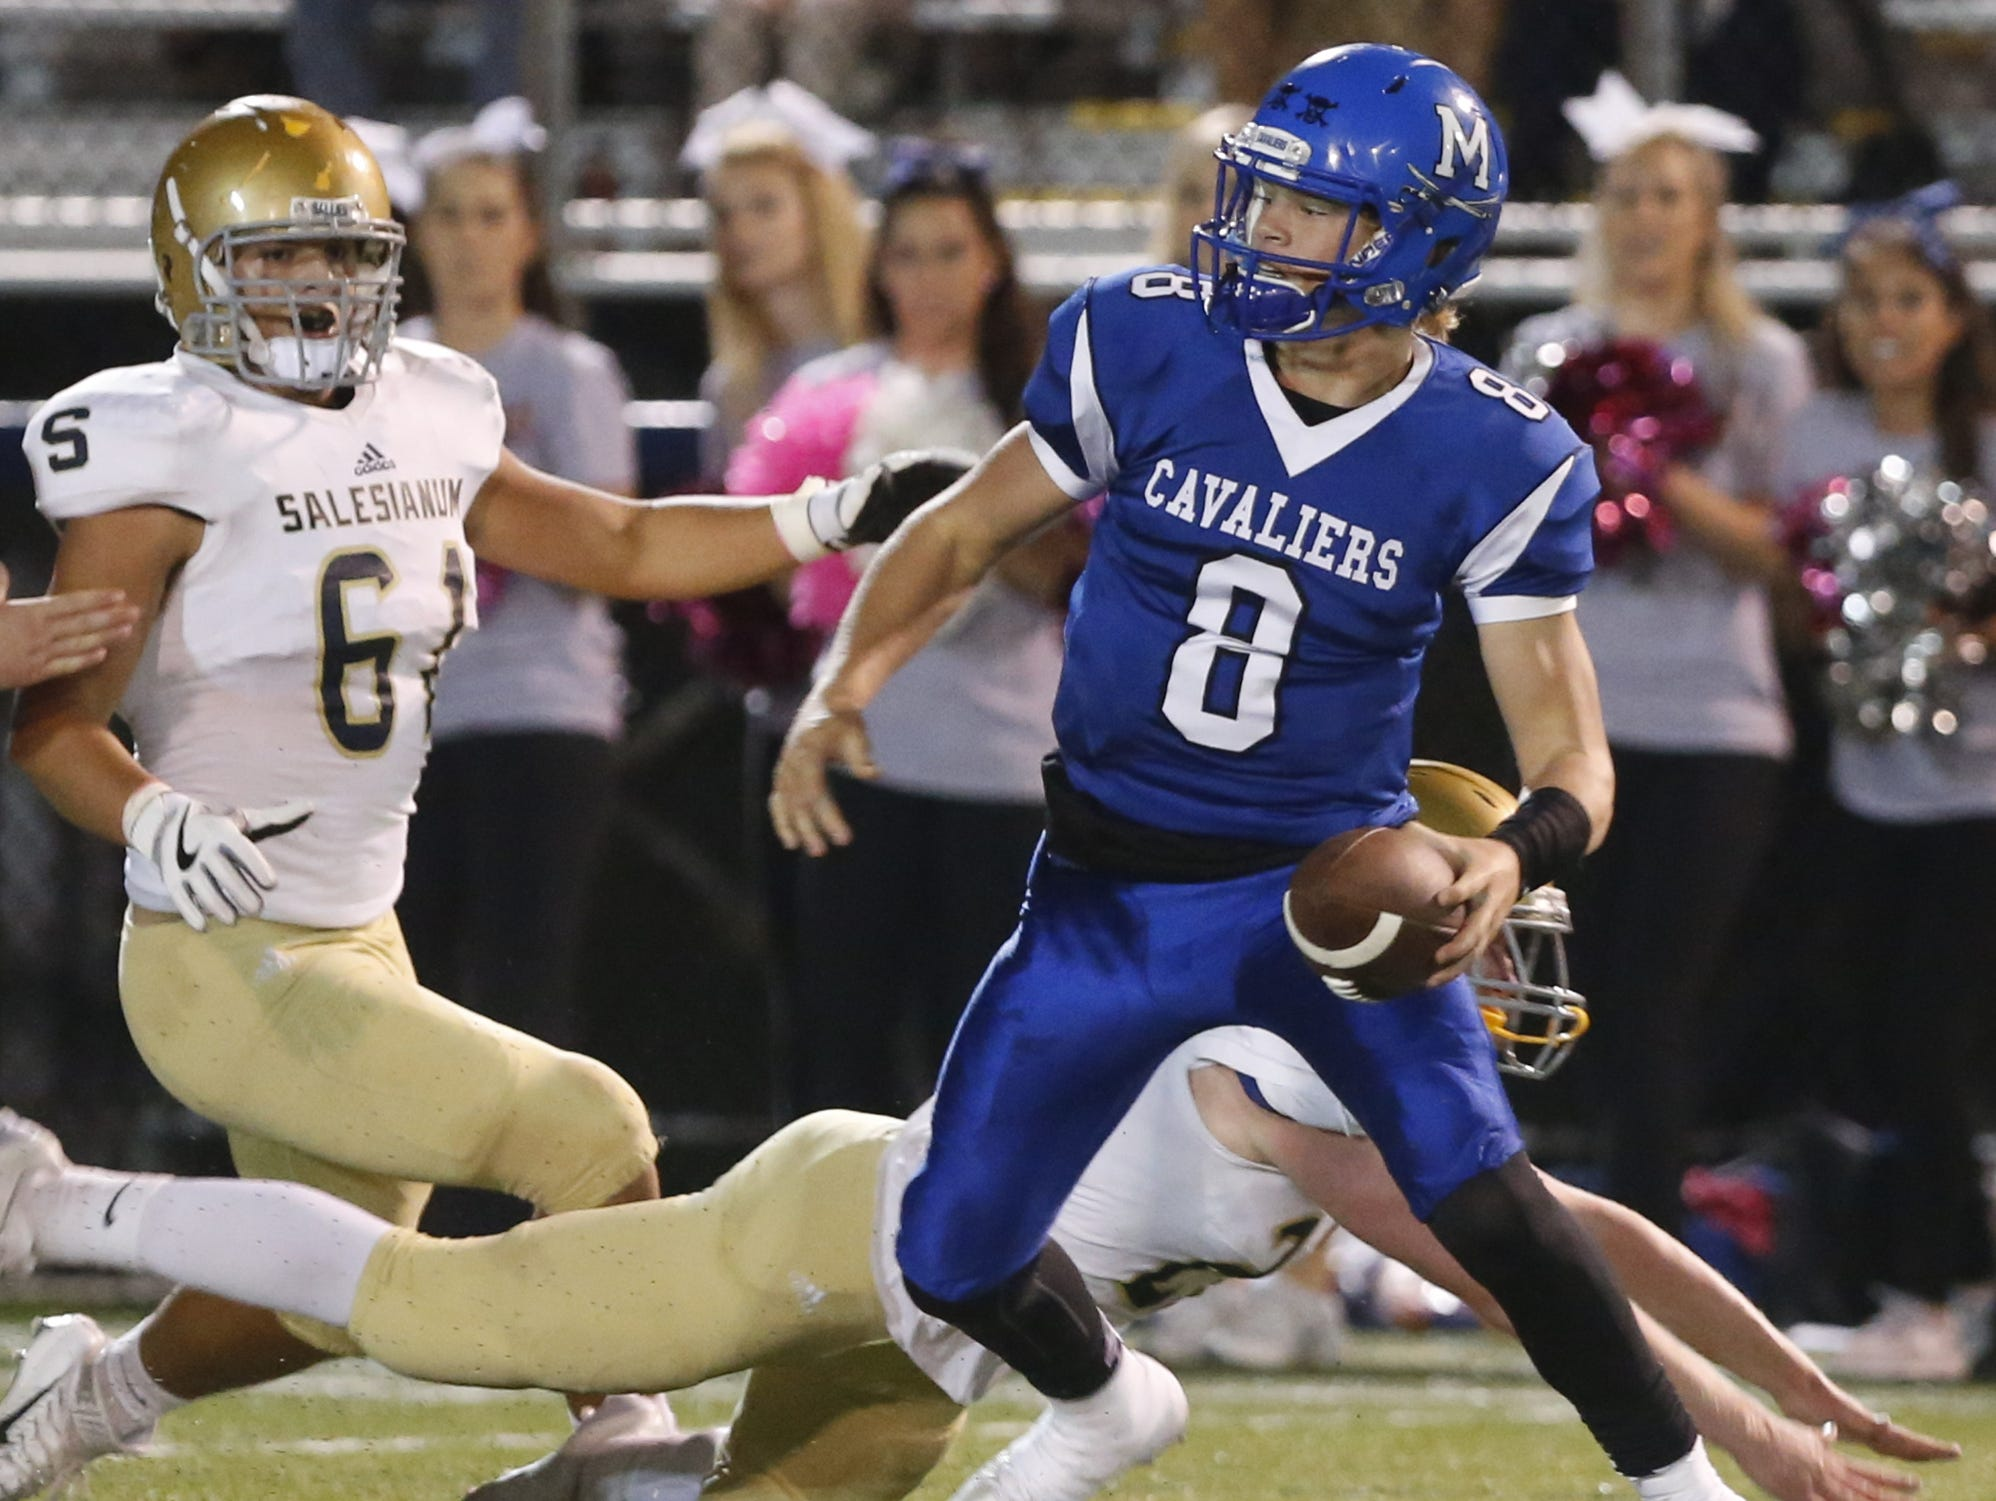 Middletown quarterback Drew Fry avoids Salesianum's Casey Spink (61) and Garrett Million before turning upfield for a 12-yard scramble and score in the first quarter at Cavalier Stadium Friday.